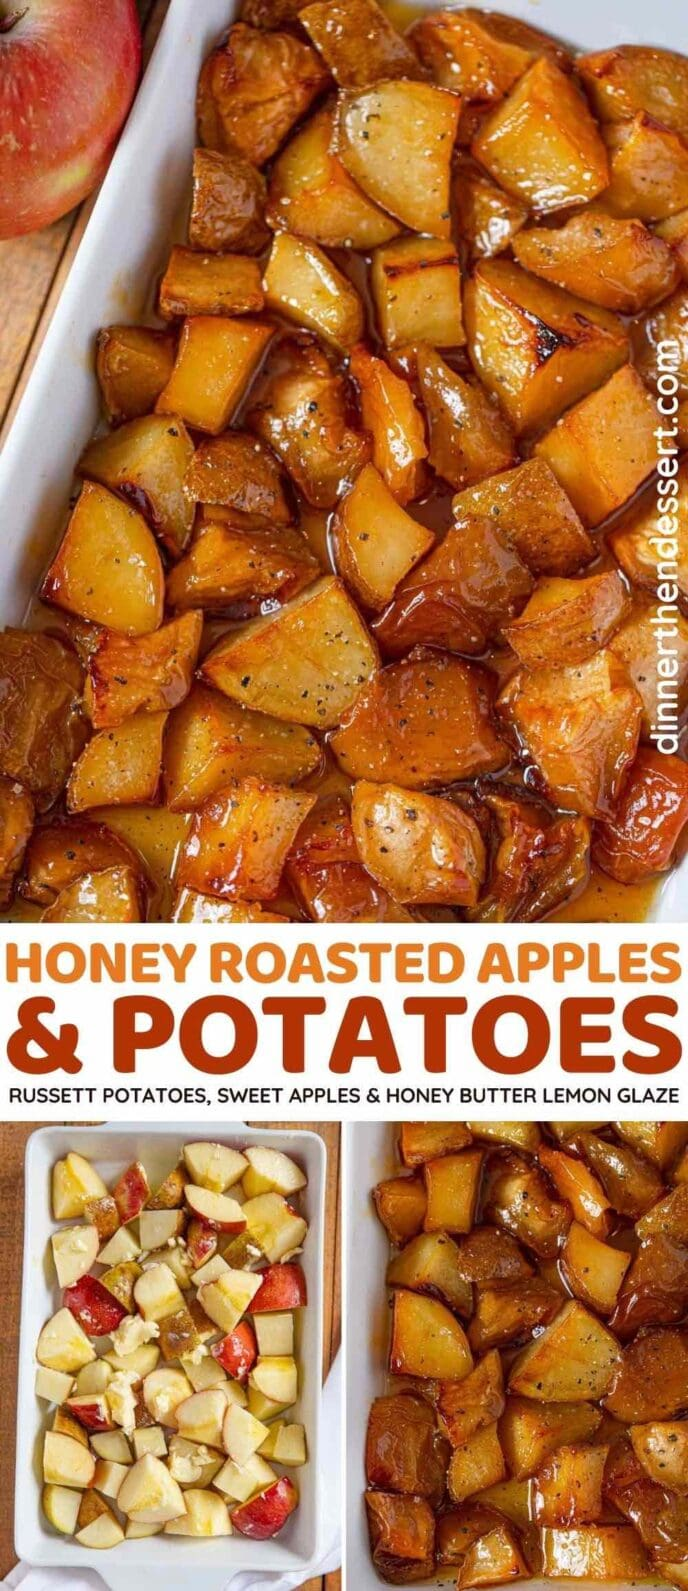 Honey Roasted Potatoes and Apples